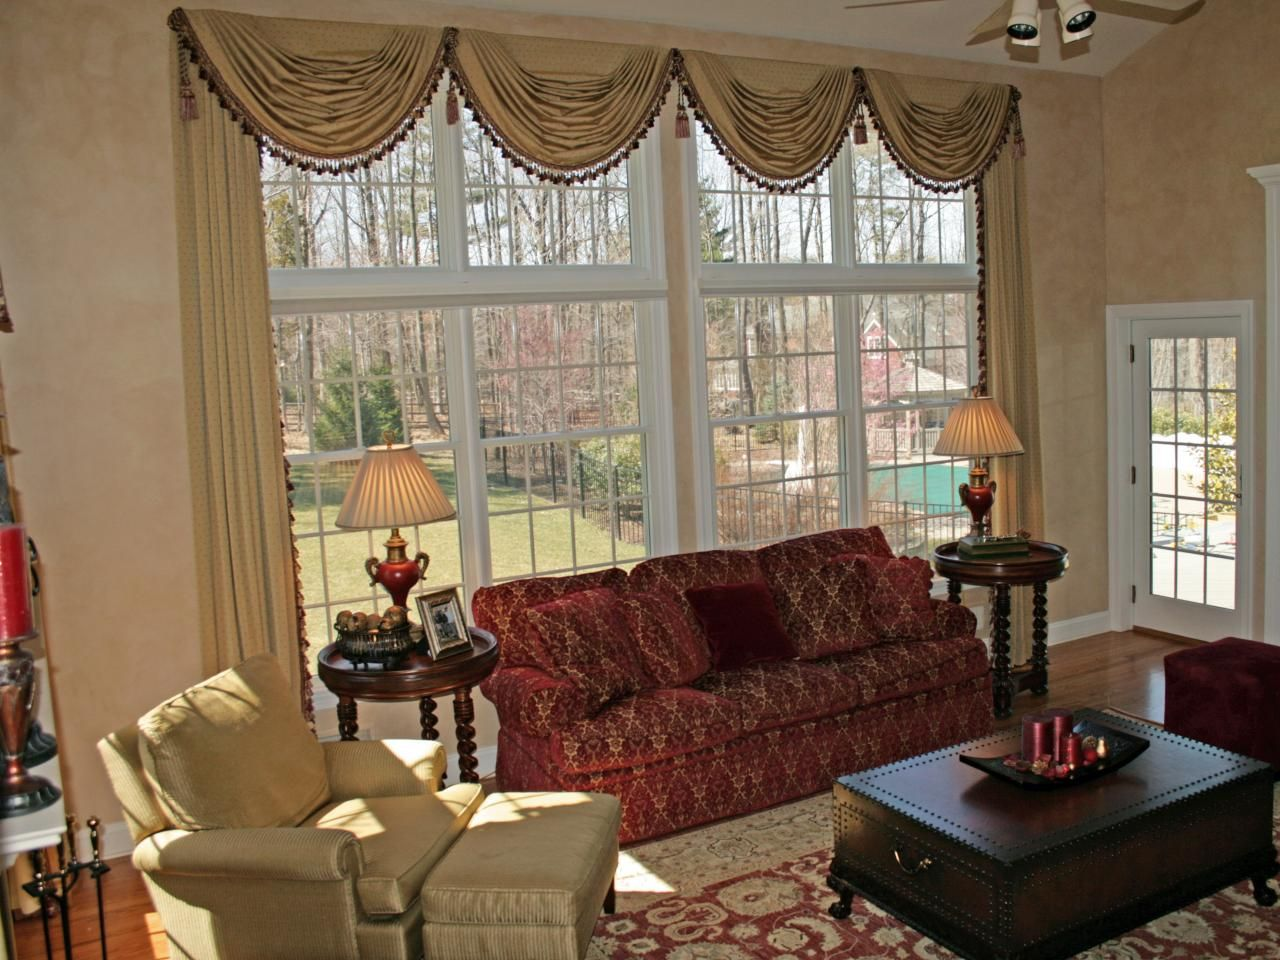 An Opulent Bedroom With Red Walls And Burgundy Curtains Features A Platform Bed Curved Padded Headboard Footboard Ornate Gold Bench At T